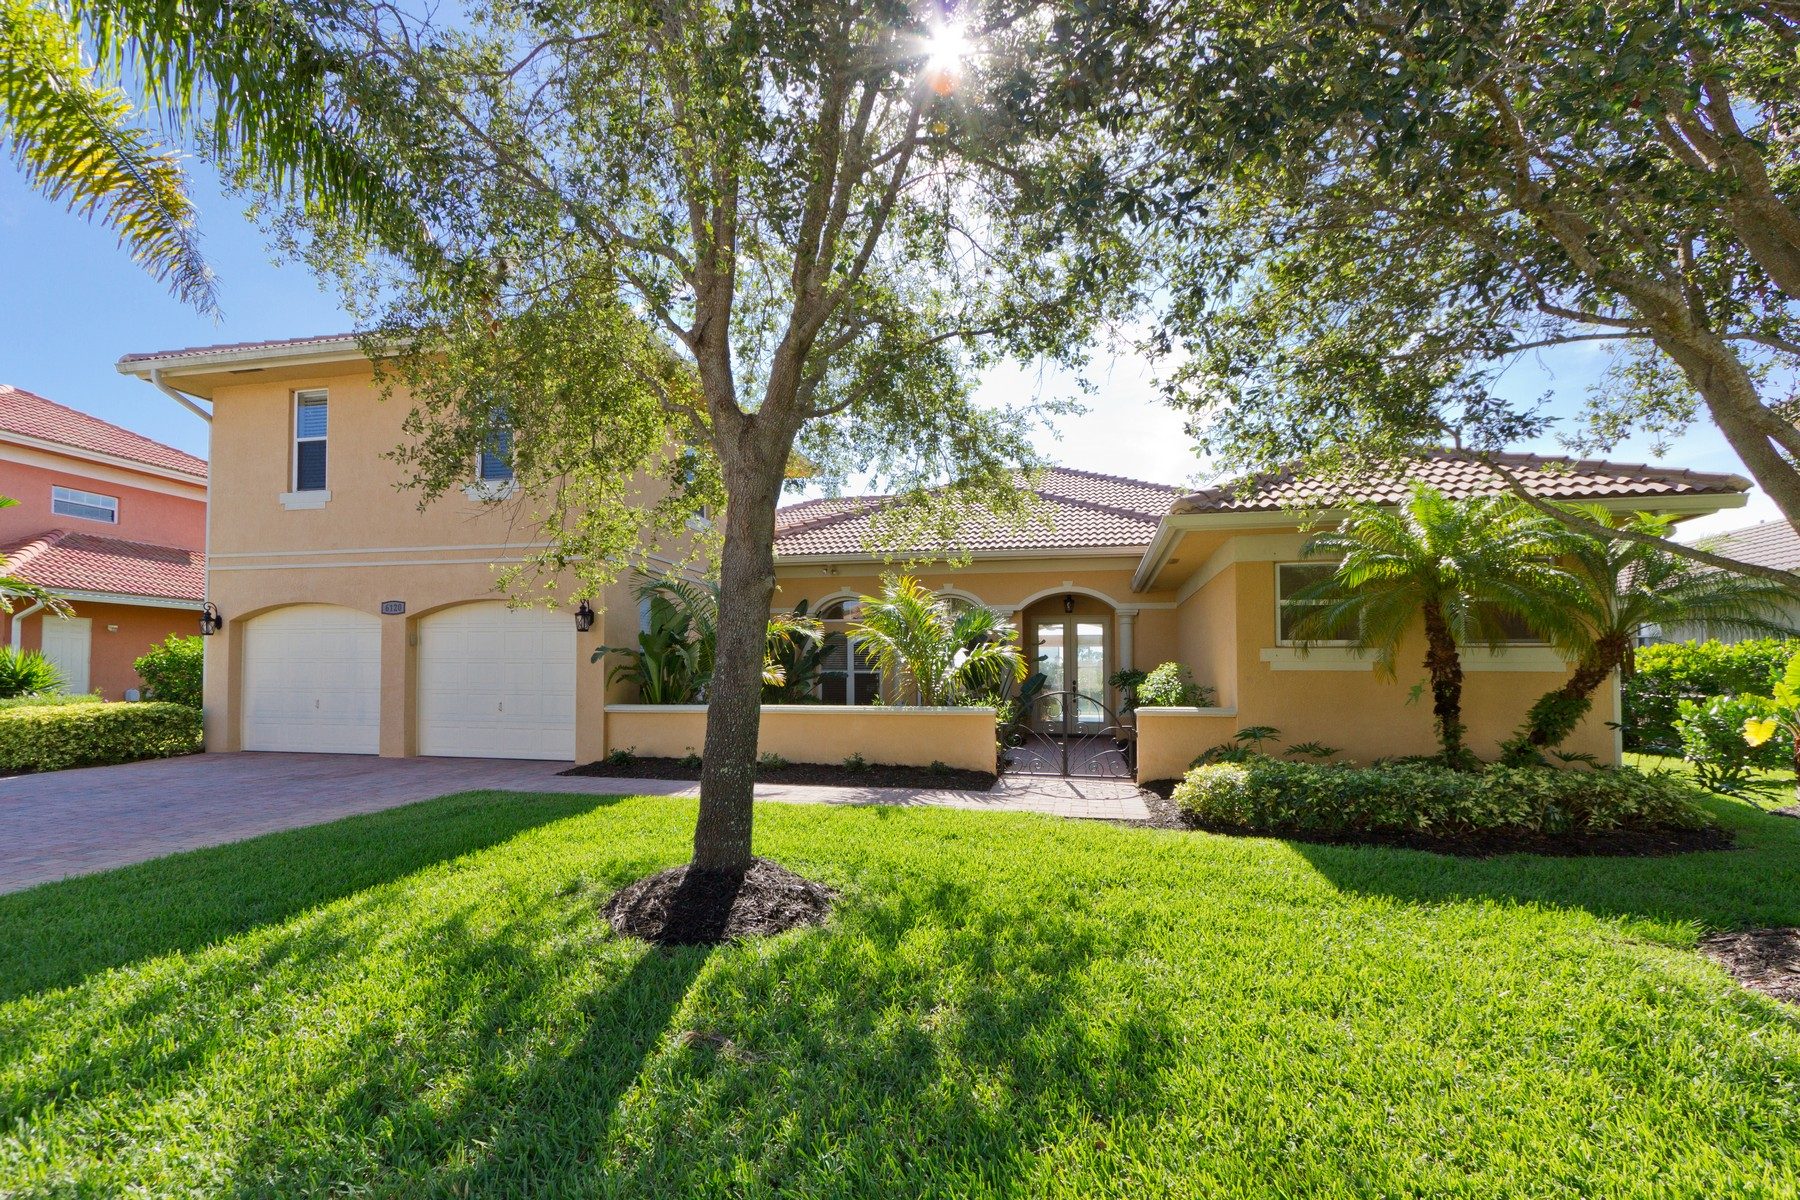 Single Family Home for Sale at Lakeside Tuscany Model Exudes Mediterranean Charm 6120 56th Ave Vero Beach, Florida 32967 United States